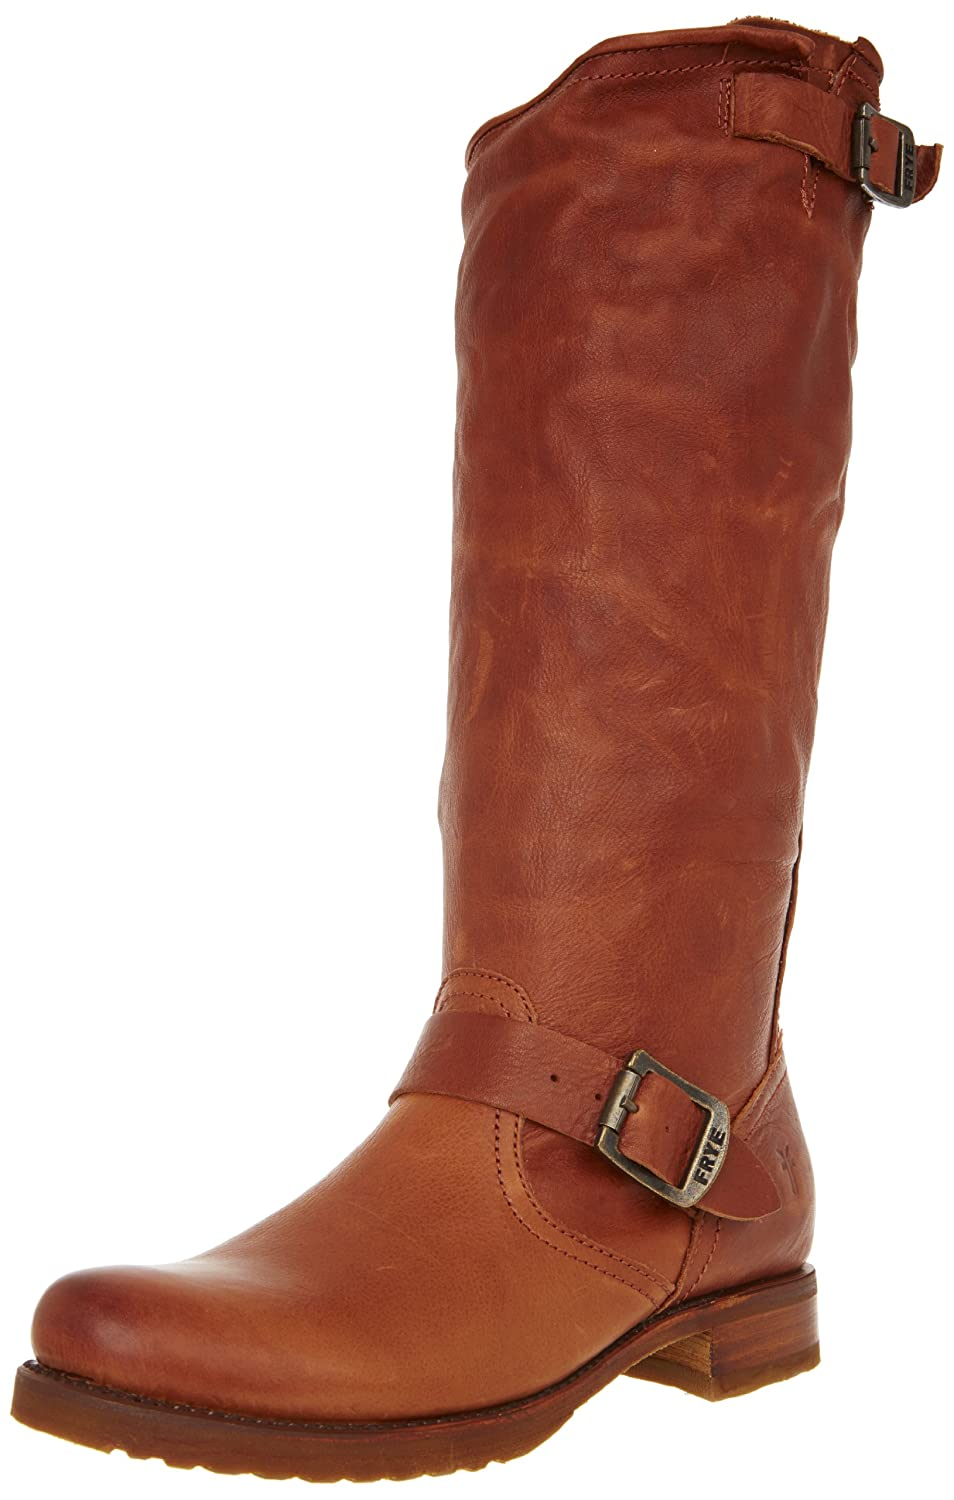 FRYE Women's Veronica Slouch Boot B008BULX4S 9.5 B(M) US|Whiskey Soft Vintage Leather-76602